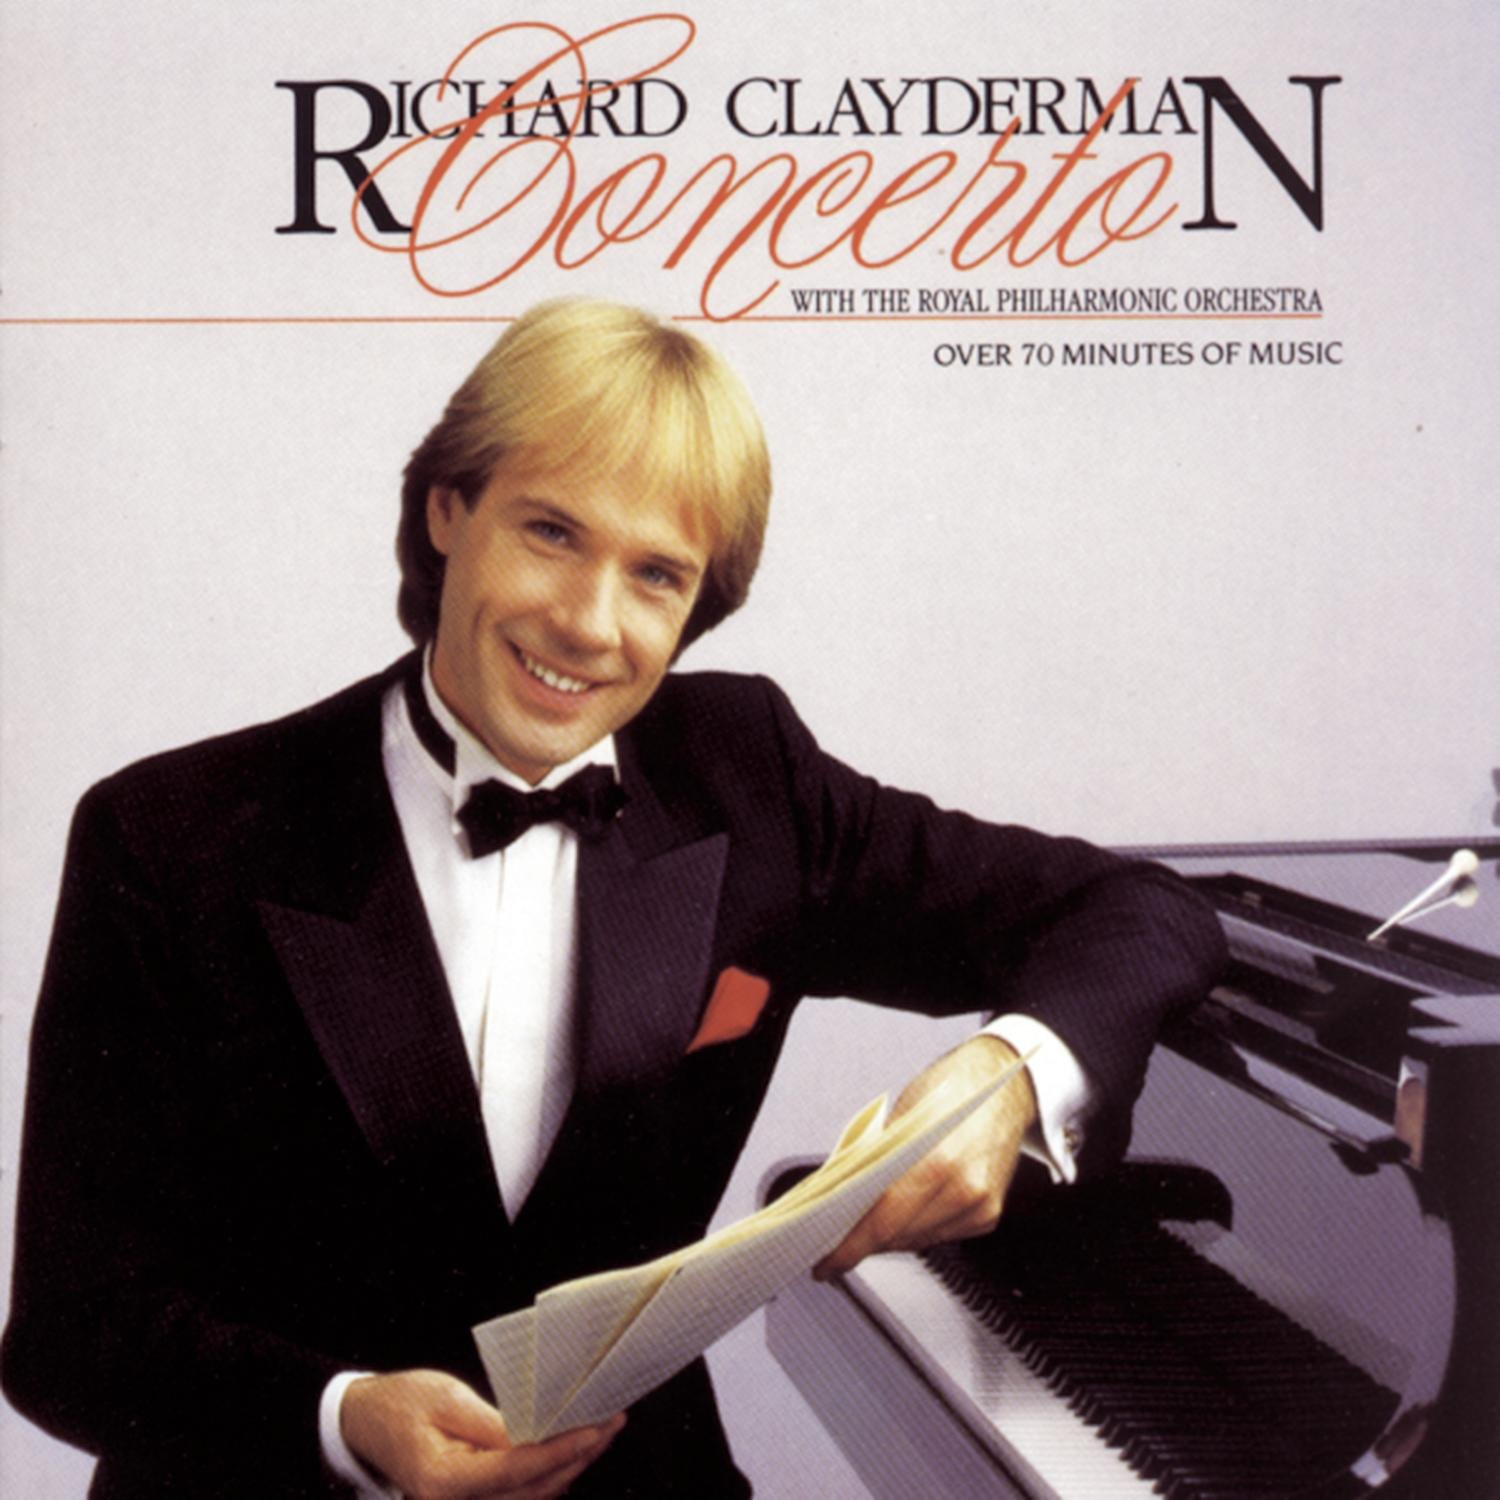 Richard Clayderman Concerto with the Royal Philharmonic Orchestra